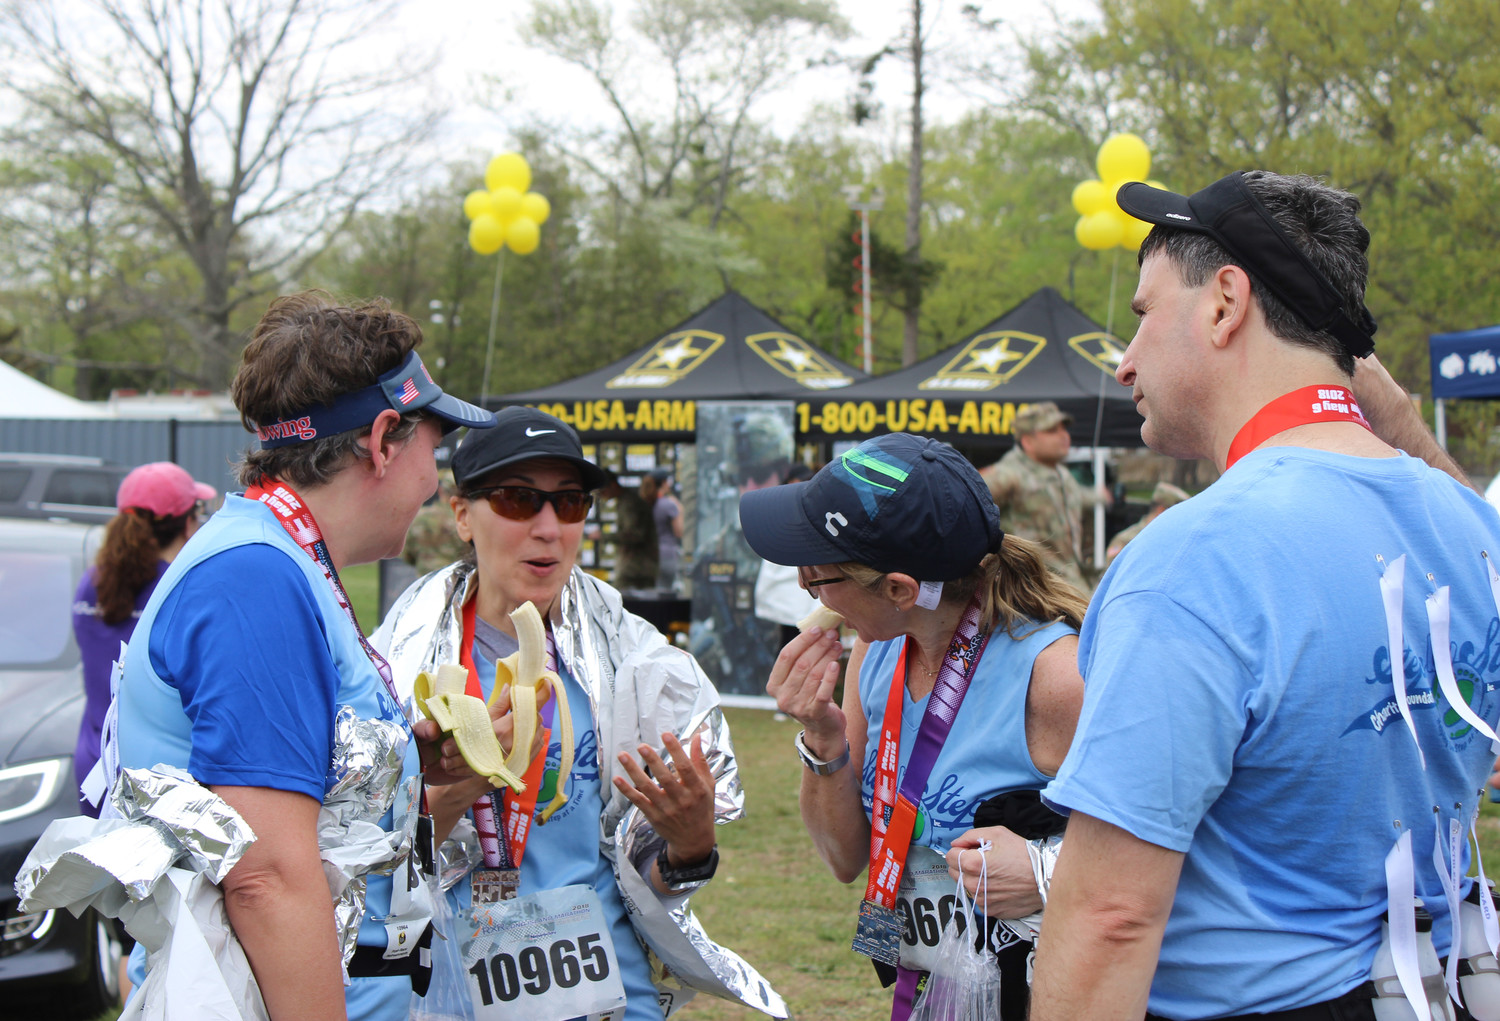 Some residents ran as a team for a common cause, such as the nonprofit Step by Step, which raised $5,000 for ovarian cancer research this year. Linda Simone, Marilyn Southerton, Martina James, Mark Woolfson and eight other runners represented the Carle Place organization.